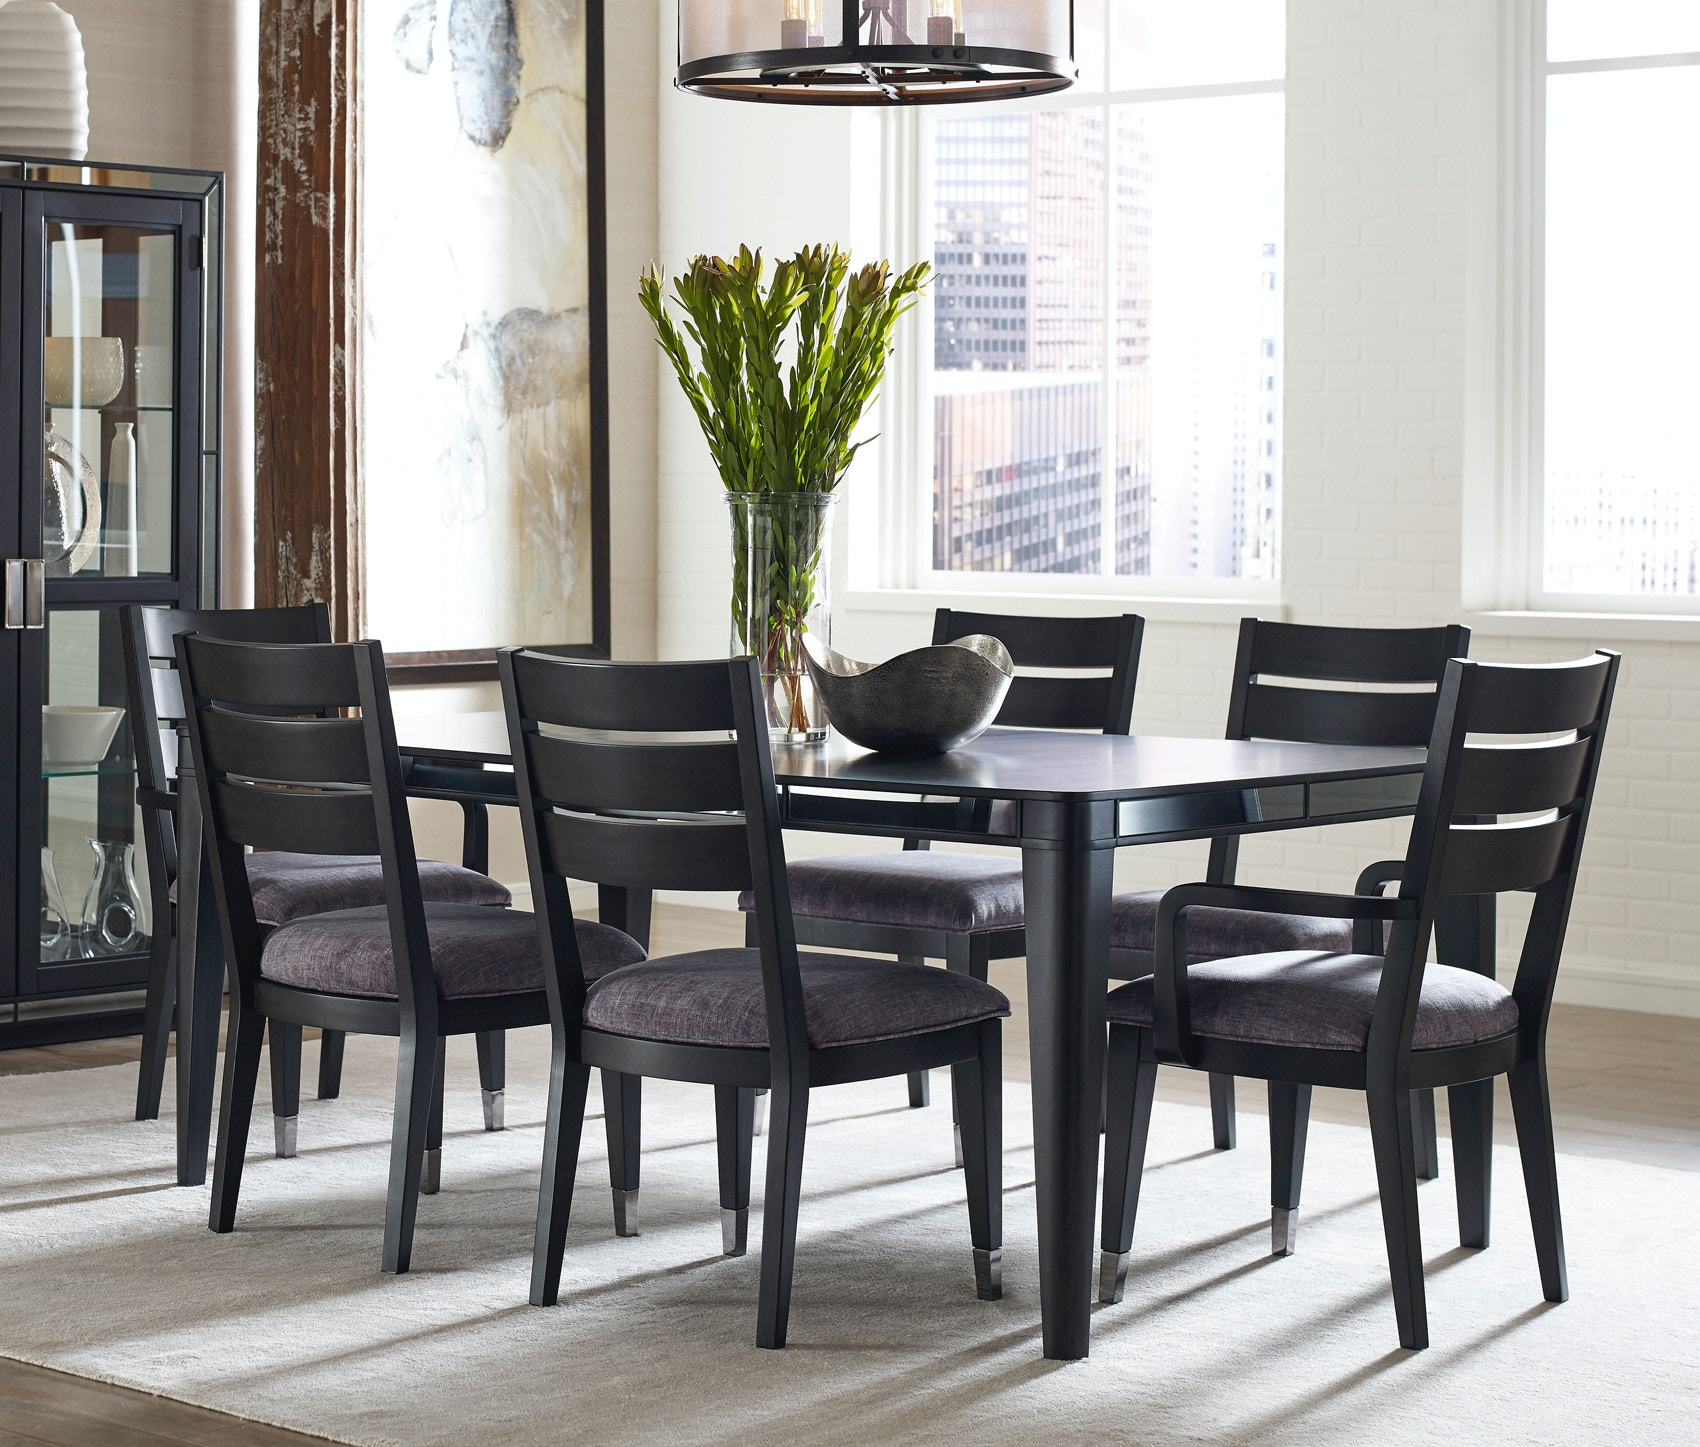 Pulaski Furniture Silverton Sound Dining Set 718585